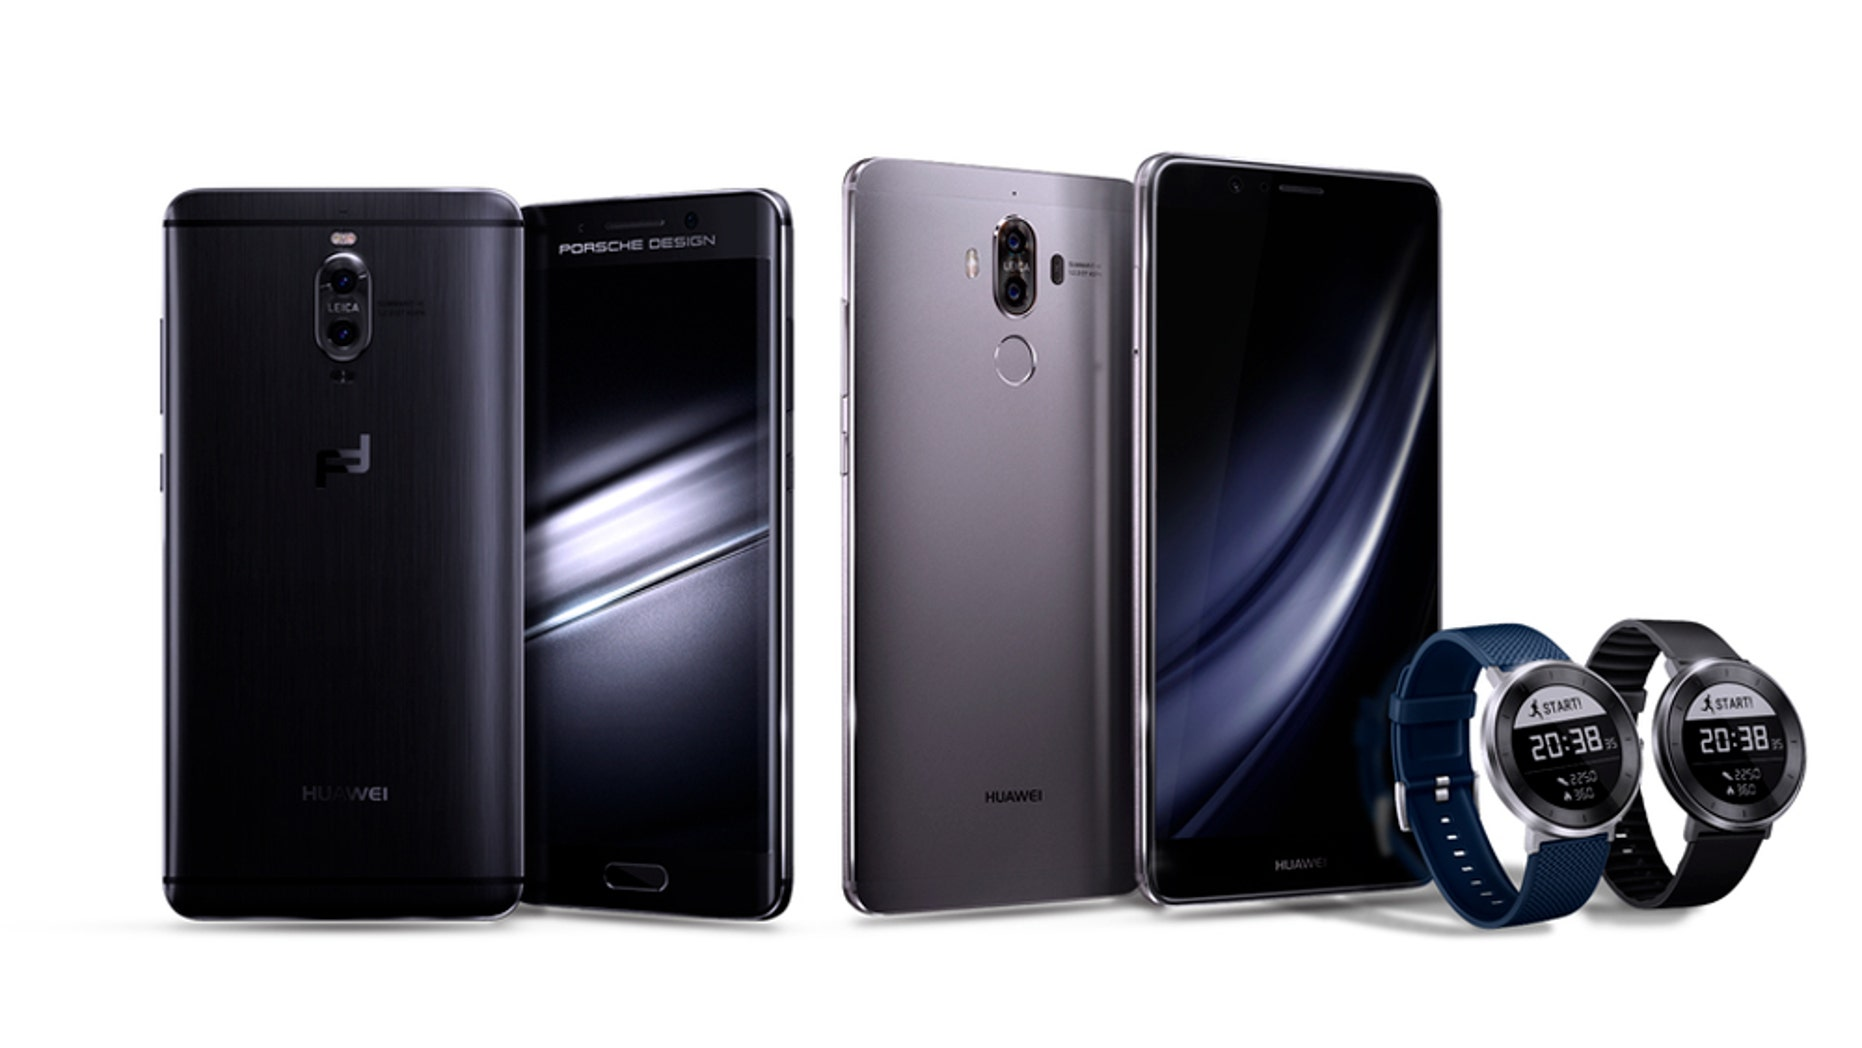 Huawei Introduces the HUAWEI Mate 9 (Photo: Business Wire)